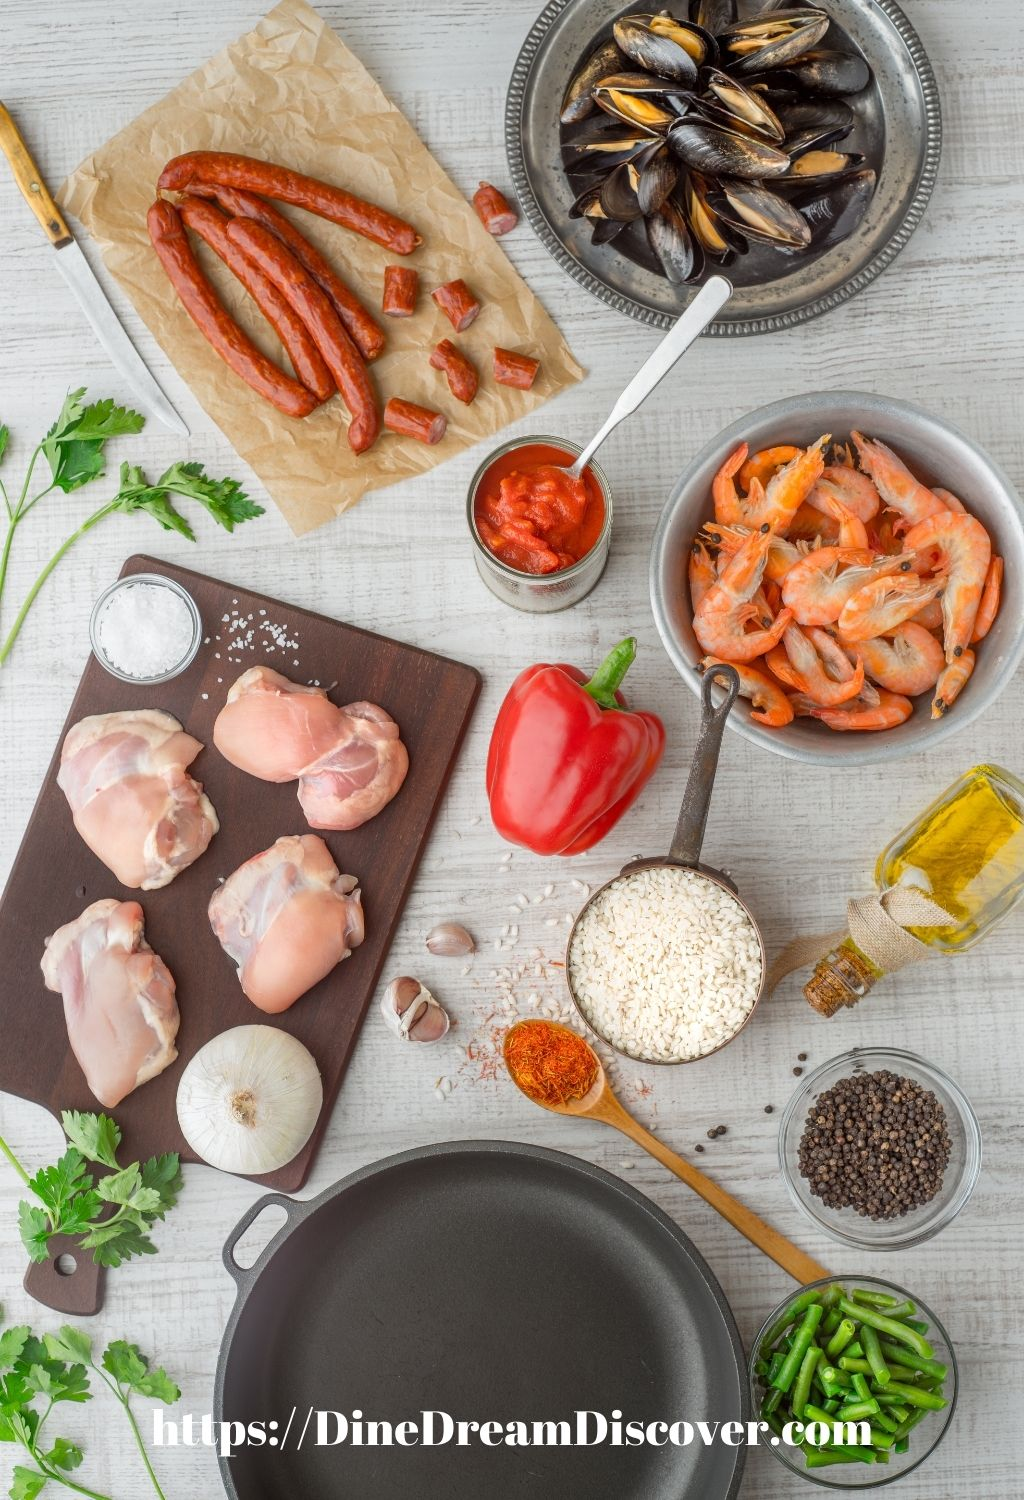 campfire mixed paella recipe ingredients